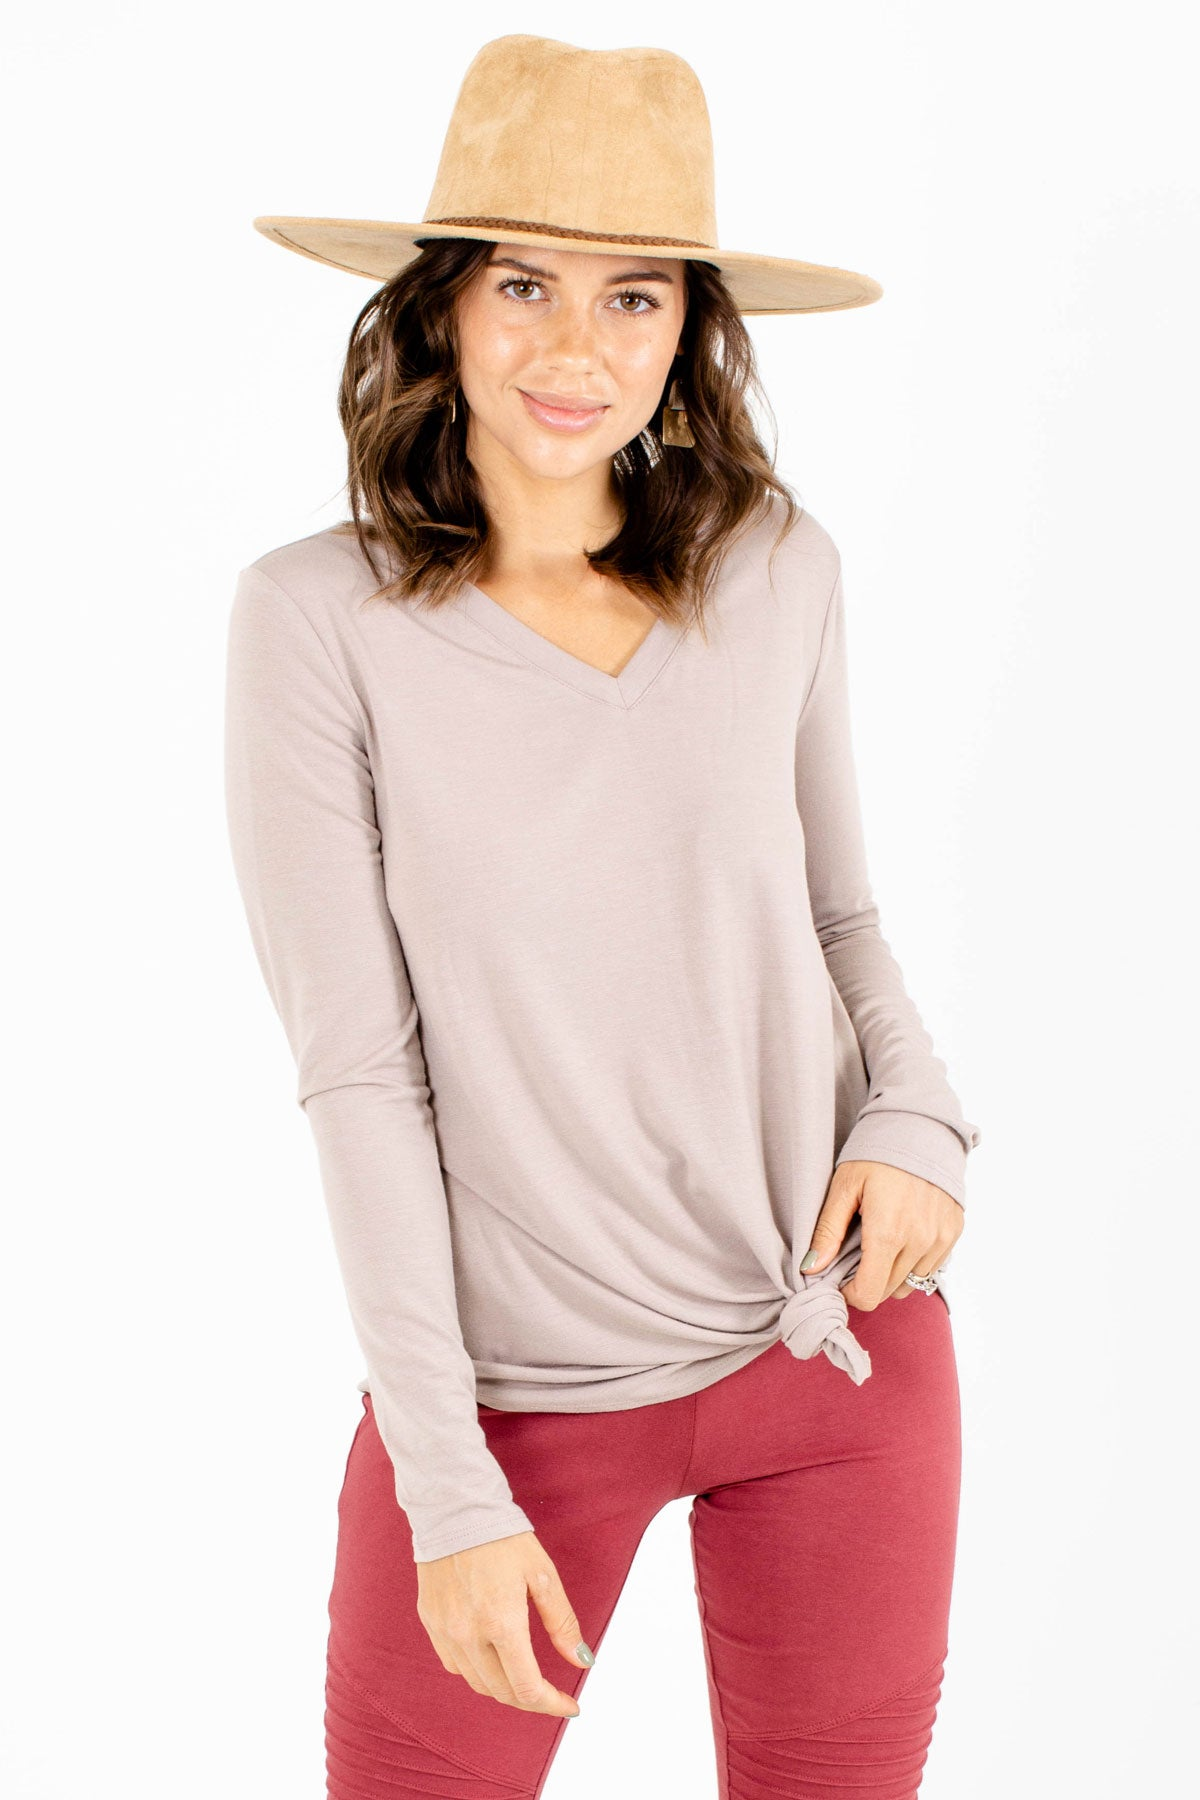 Brown V-Neckline Boutique Tops for Women